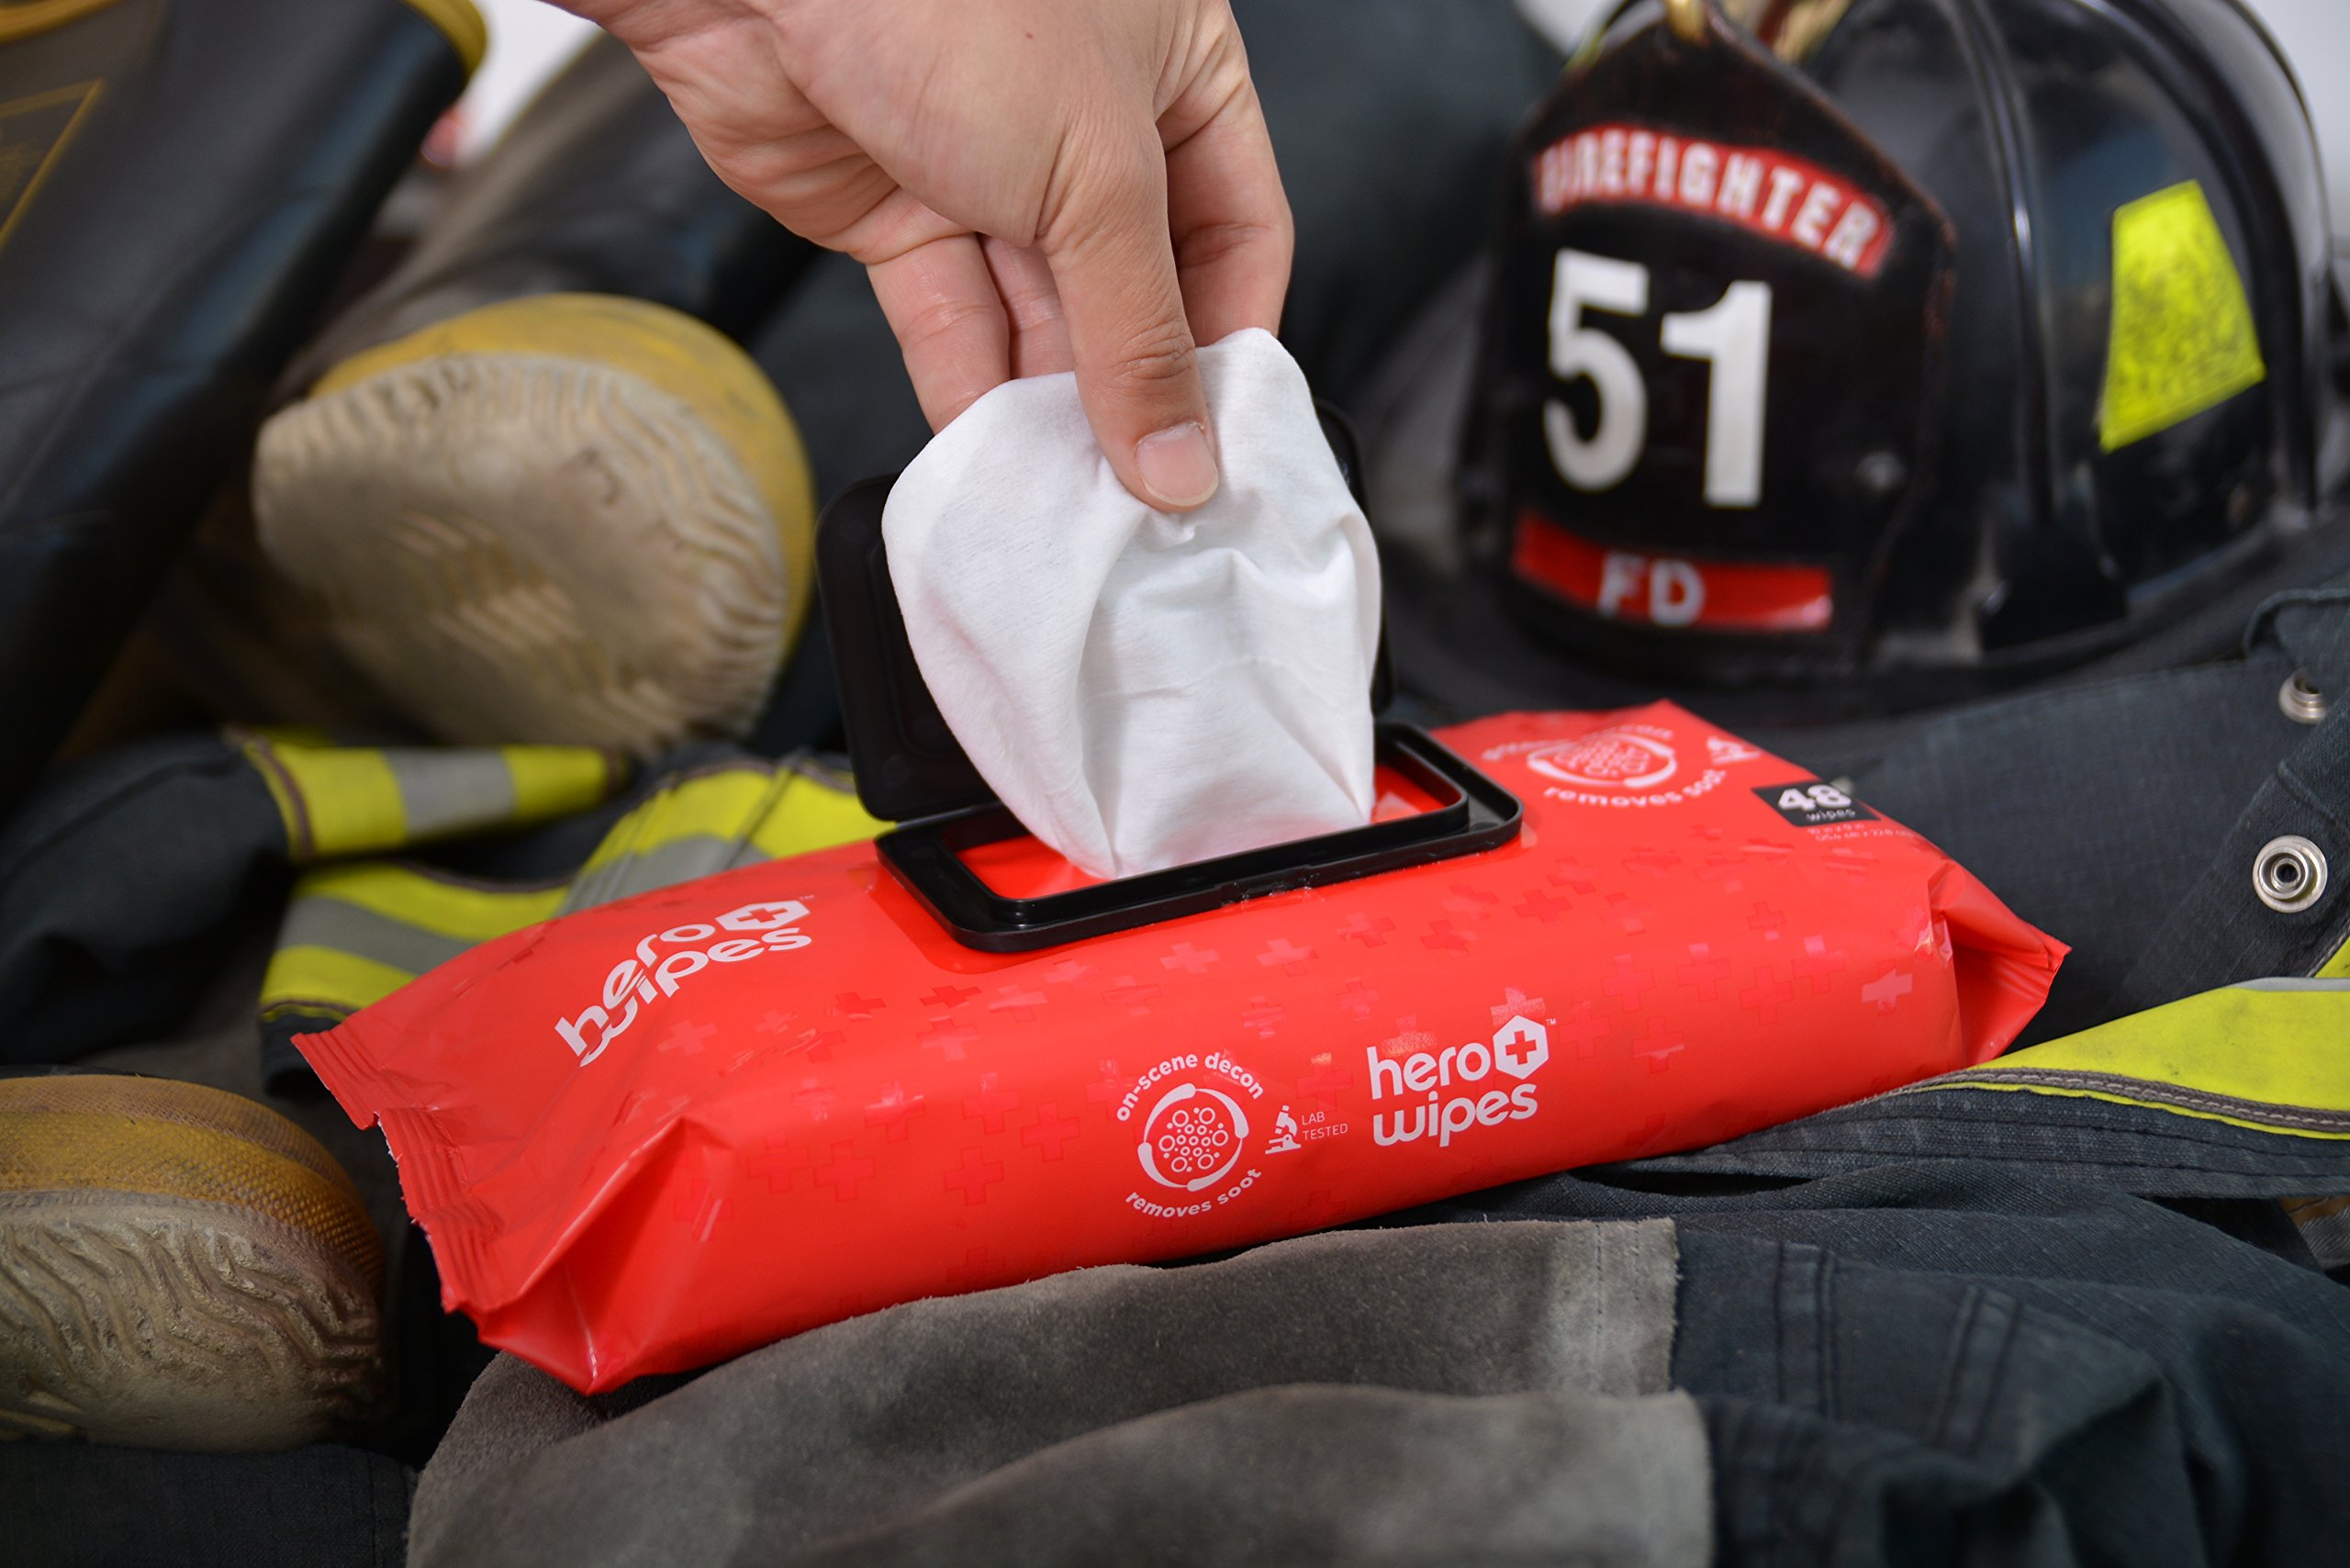 Hero Wipes On Scene Decon Body Wipes for Firefighters (Total 576 Count, case of 12 pouches) Removes 98% of Carcinogens - All Natural Alcohol Free Formula - Removes Soot, Smoke and Toxins - Made in USA by Hero Wipes (Image #5)